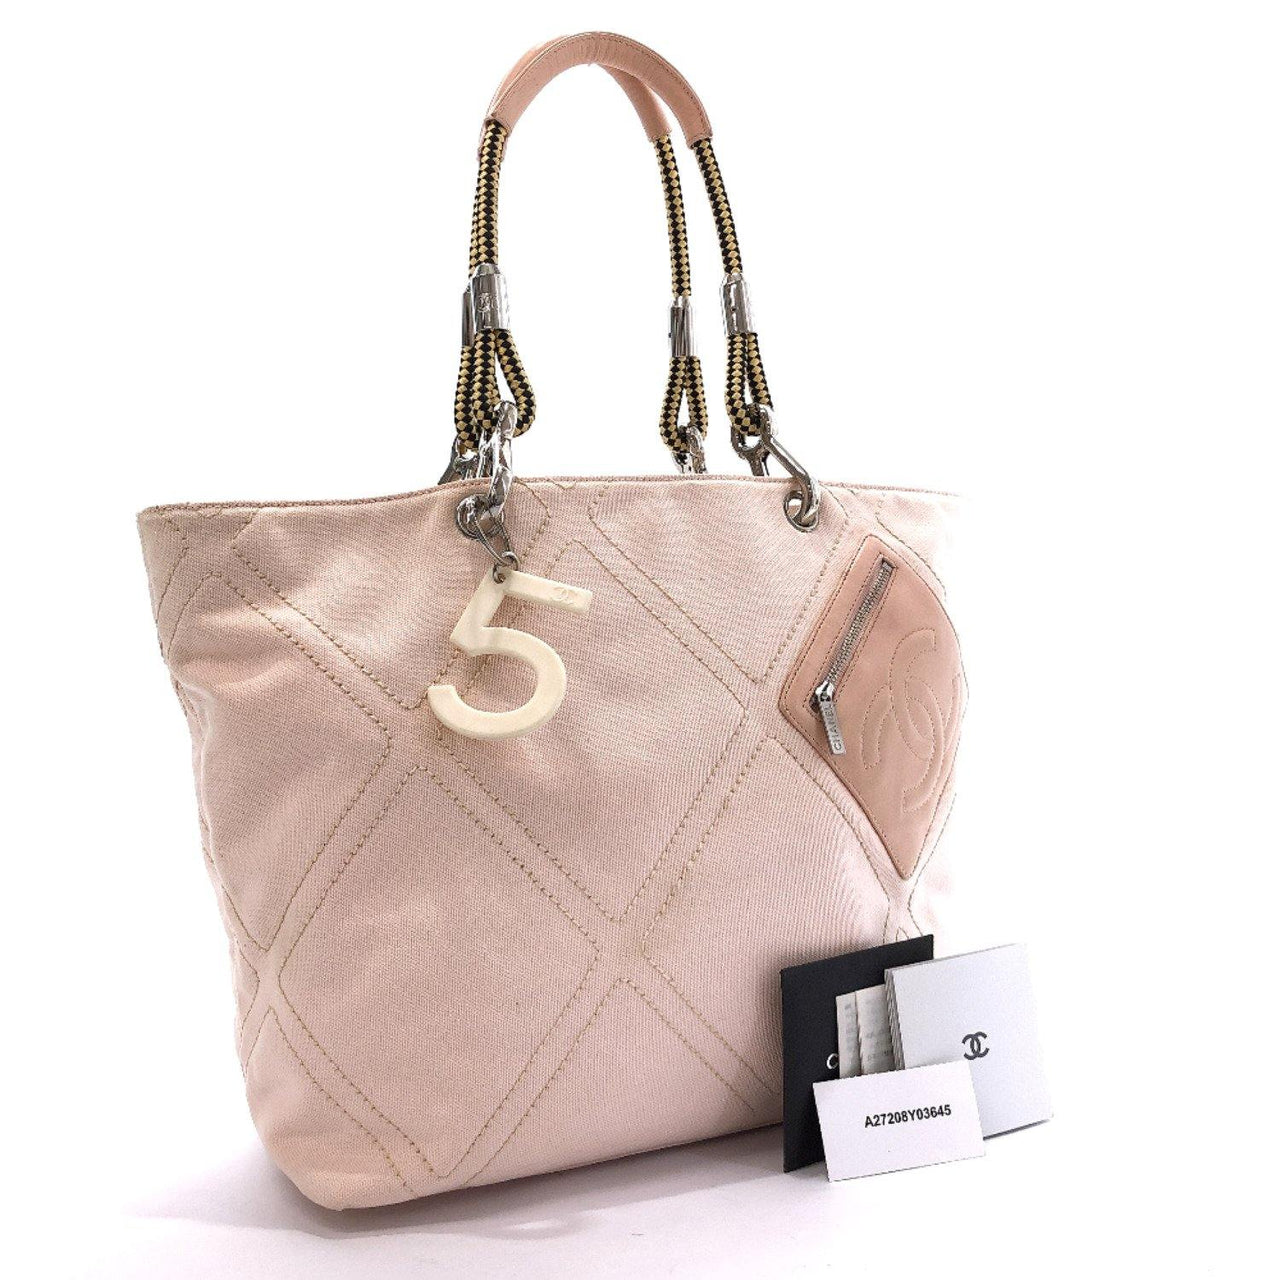 CHANEL Tote Bag canvas pink Women Used